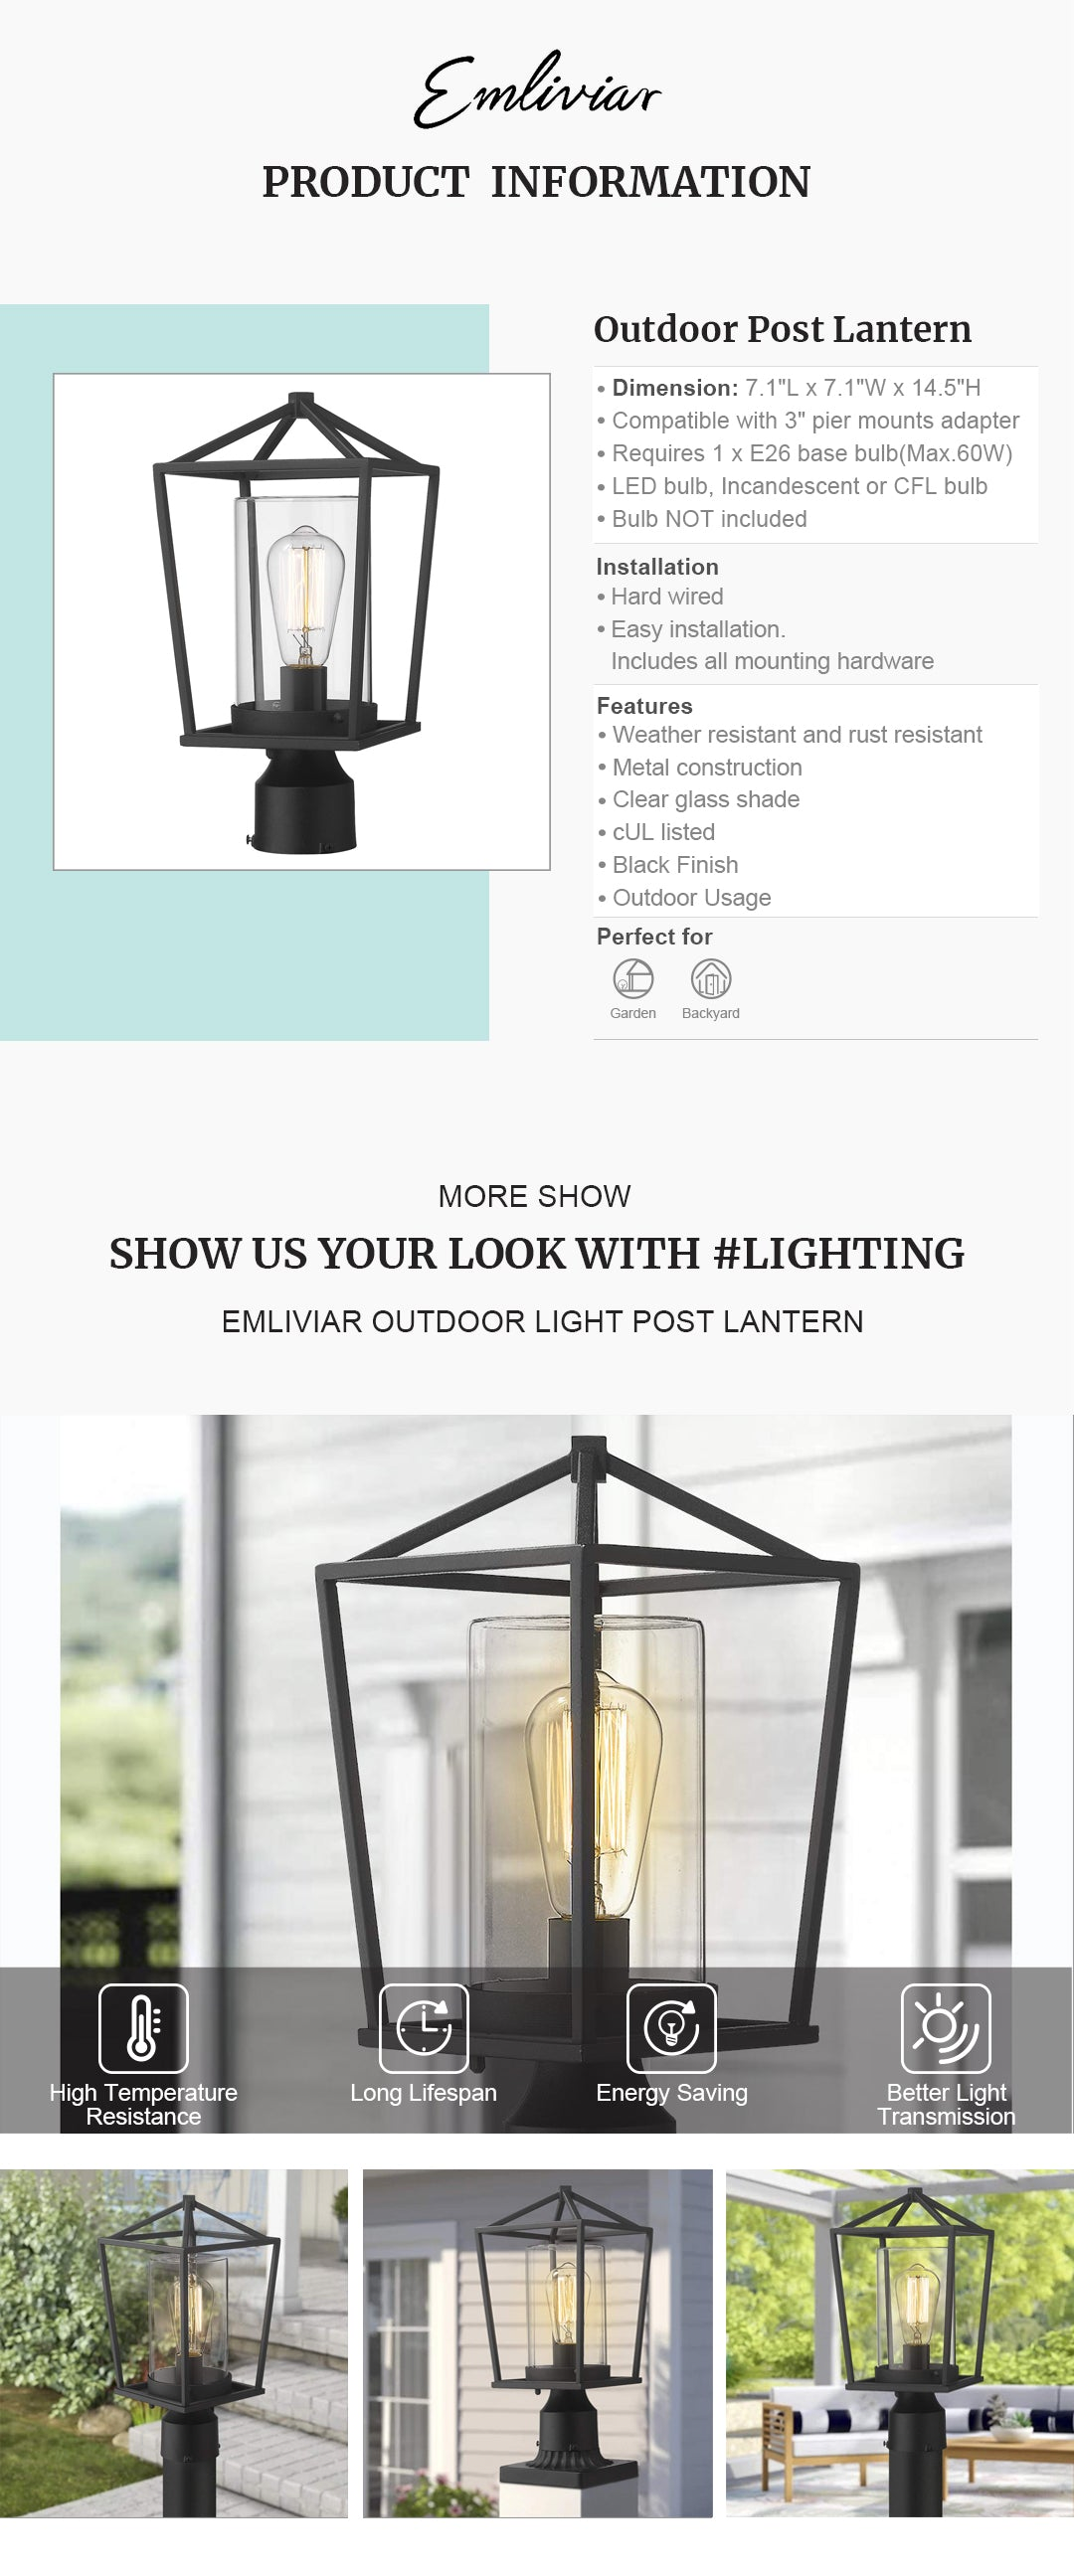 """Weather resistant and rust resistant, this outdoor post light features sturdy metal construction and clear glass shade, suitable for wet locations The pillar light can be mounted on a pillar or column, or fit it with a 3"""" diameter mounting base(Not included). Easy installation. Includes all mounting hardware Hard wired. Requires 1 x E26 base bulb(Max.60W). Bulb NOT included. Compatible with LED bulb, Incandescent or CFL bulb cUL Listed with a one-year warranty. This post mount light is perfect for garden, backyard, courtyard, patio, balcony, porch, pathway or entryway. Dimension: 7.1"""" x 7.1"""" x 14.5""""(L x W x H); Compatible with 3"""" pier mounts adapter(Sold Separately)"""